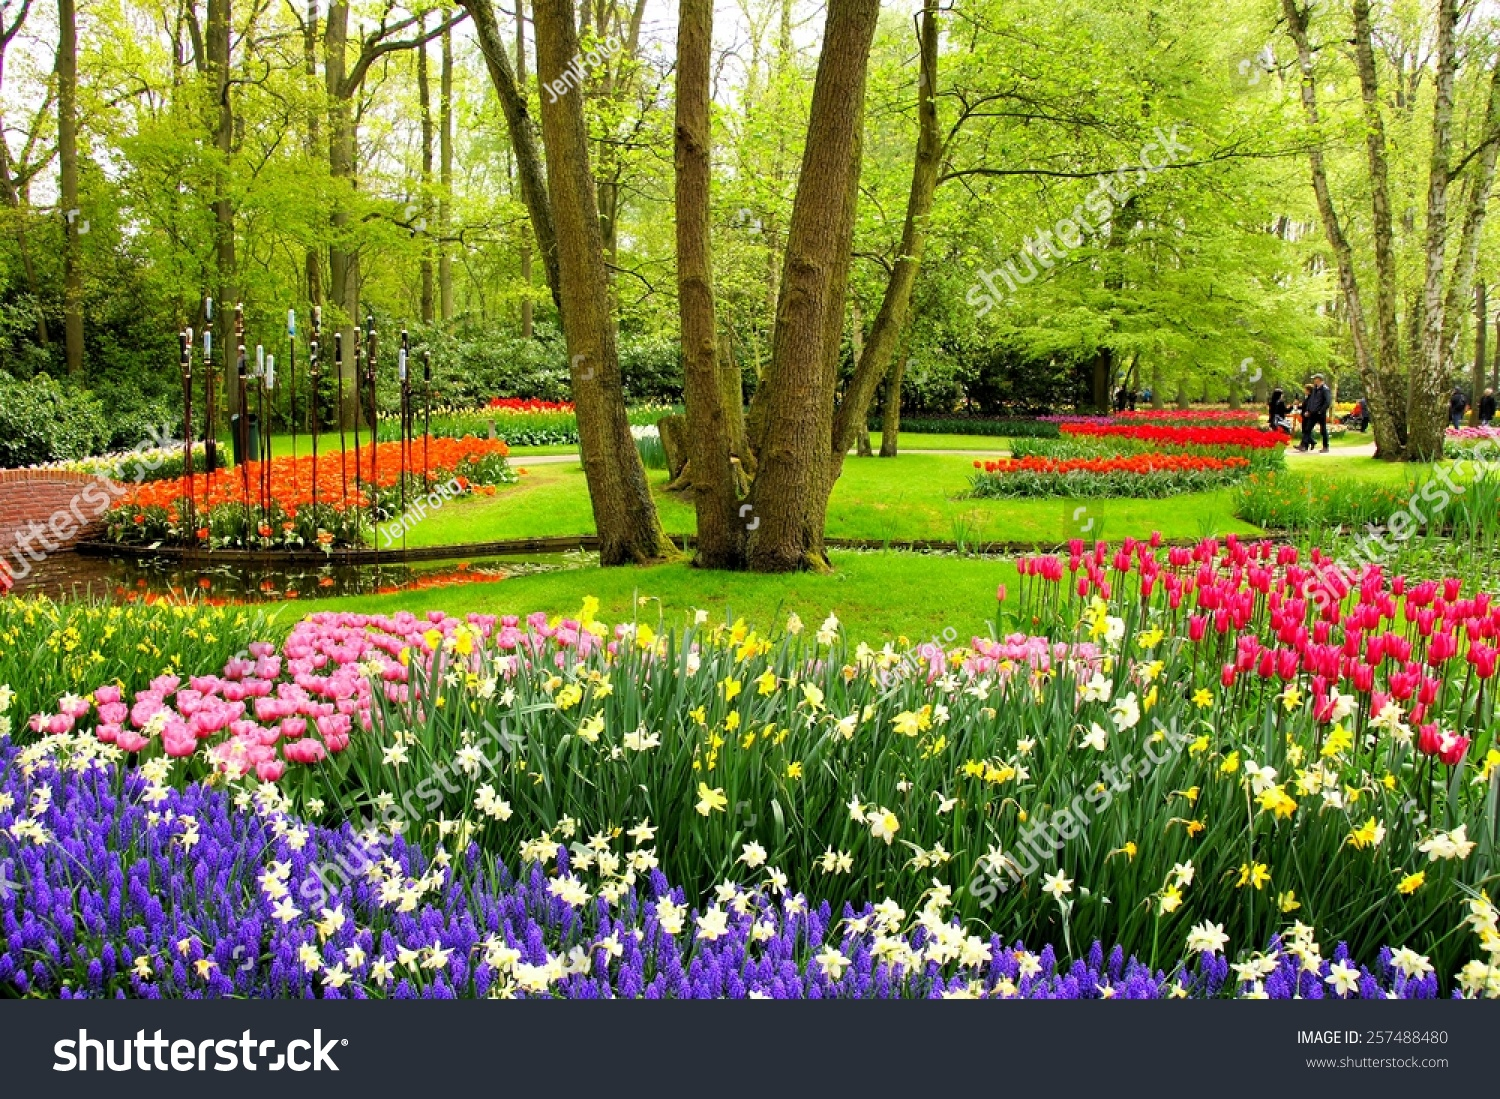 Colorful spring tulips flowers keukenhof gardens stock for Flowers and gardens pictures